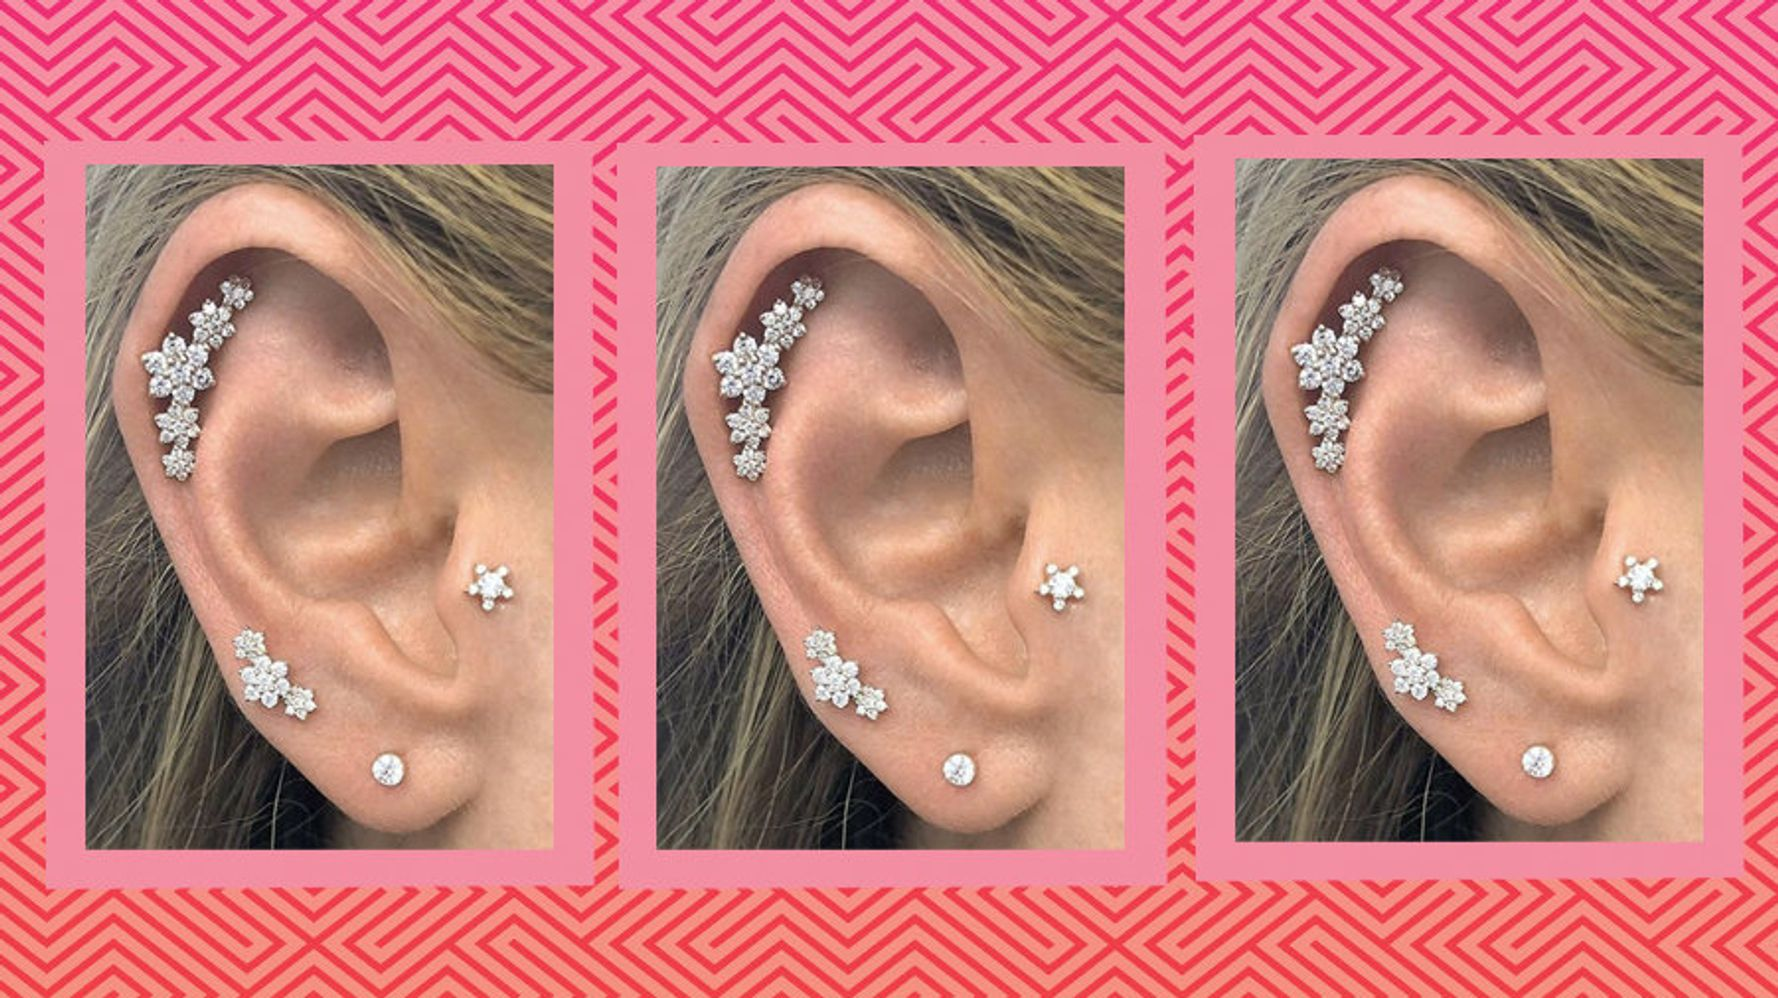 Maria Tash Predicts The Ear Piercing Trends Of 2019 Huffpost Uk Life